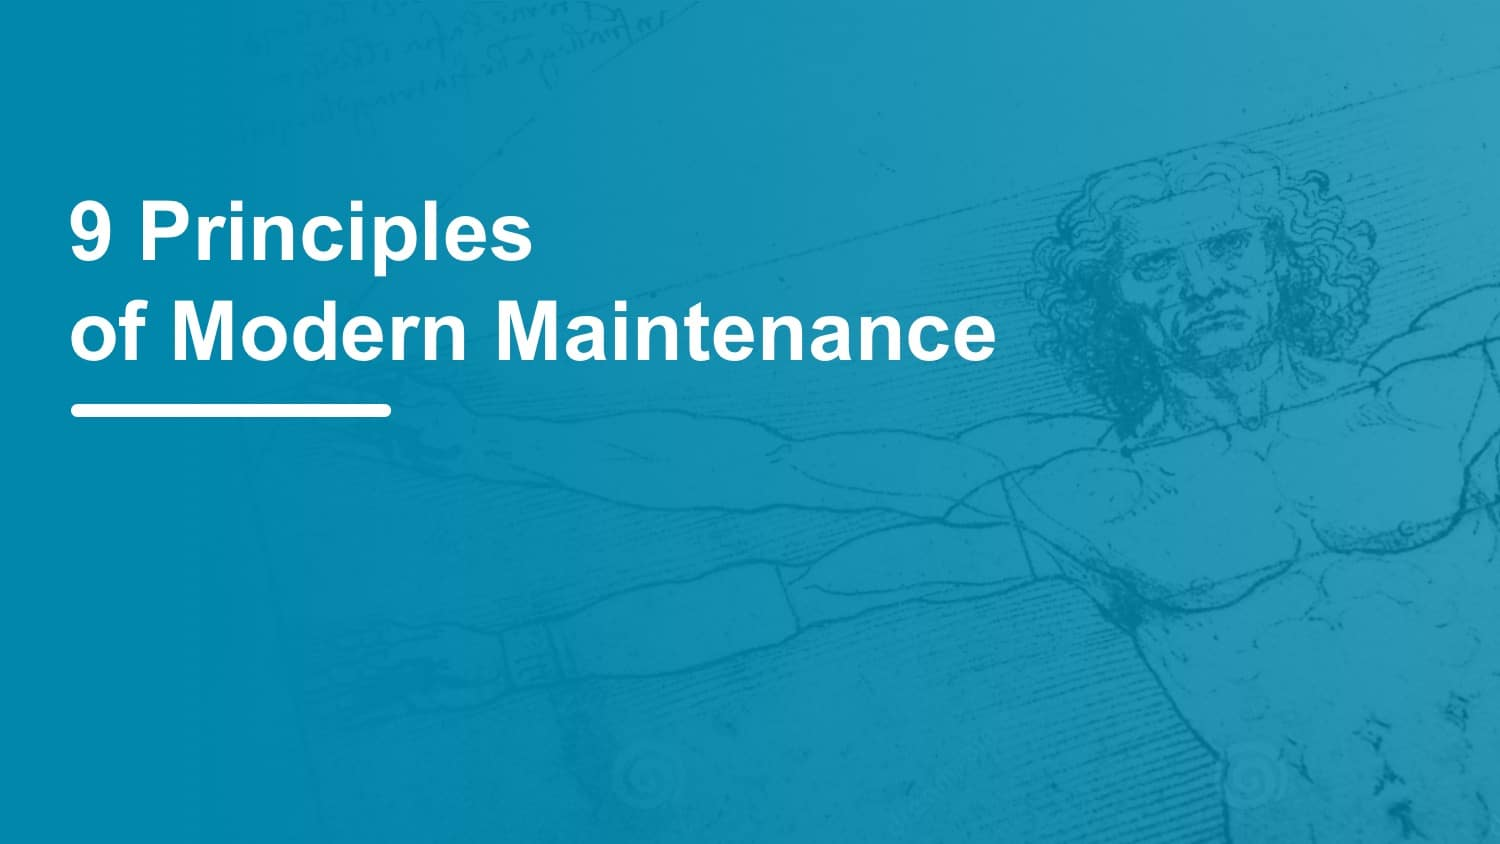 principles of modern preventive maintenance plans